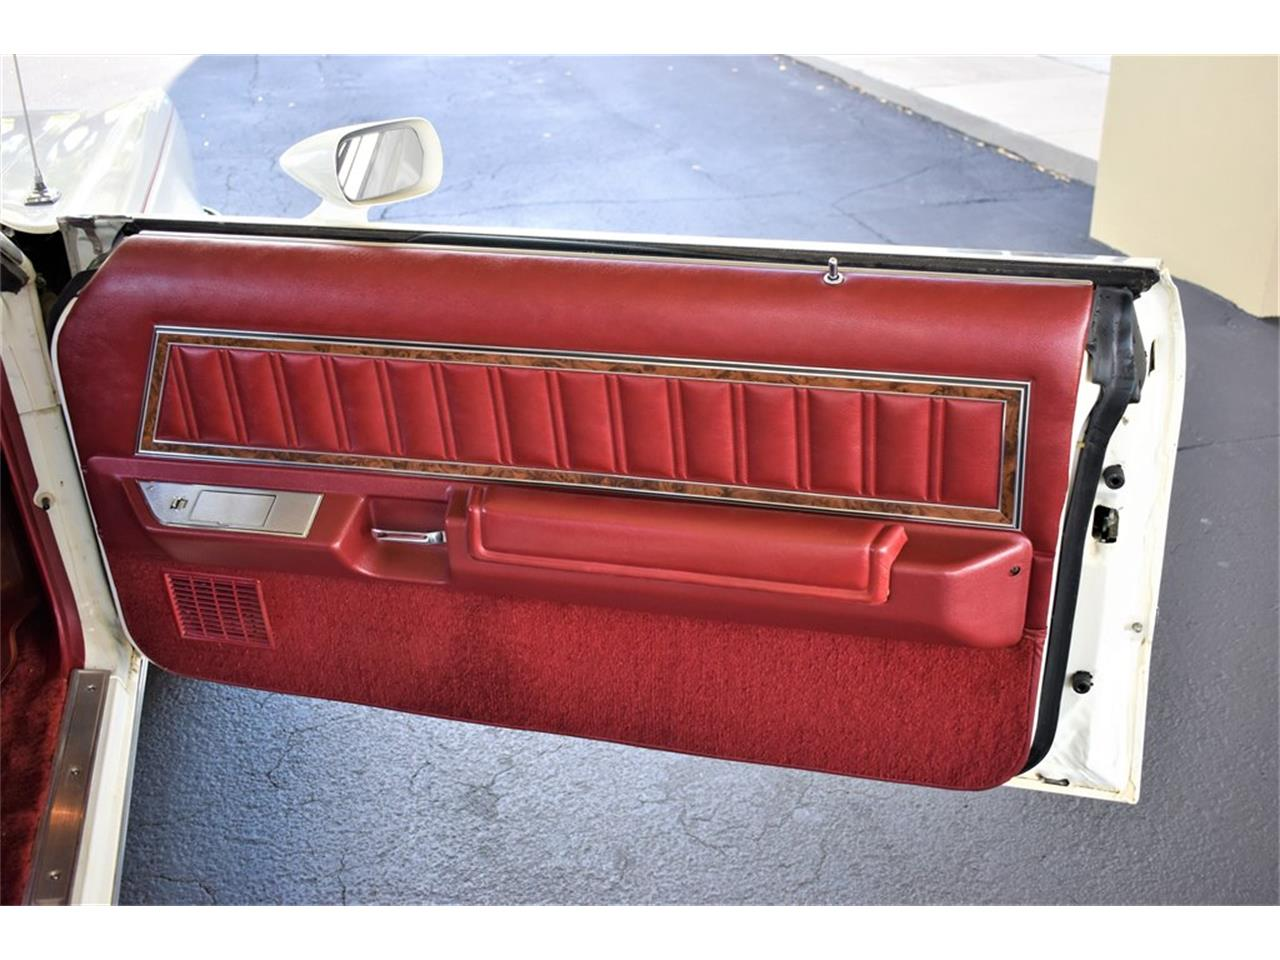 1979 Ford Thunderbird (CC-1243171) for sale in Lakeland, Florida